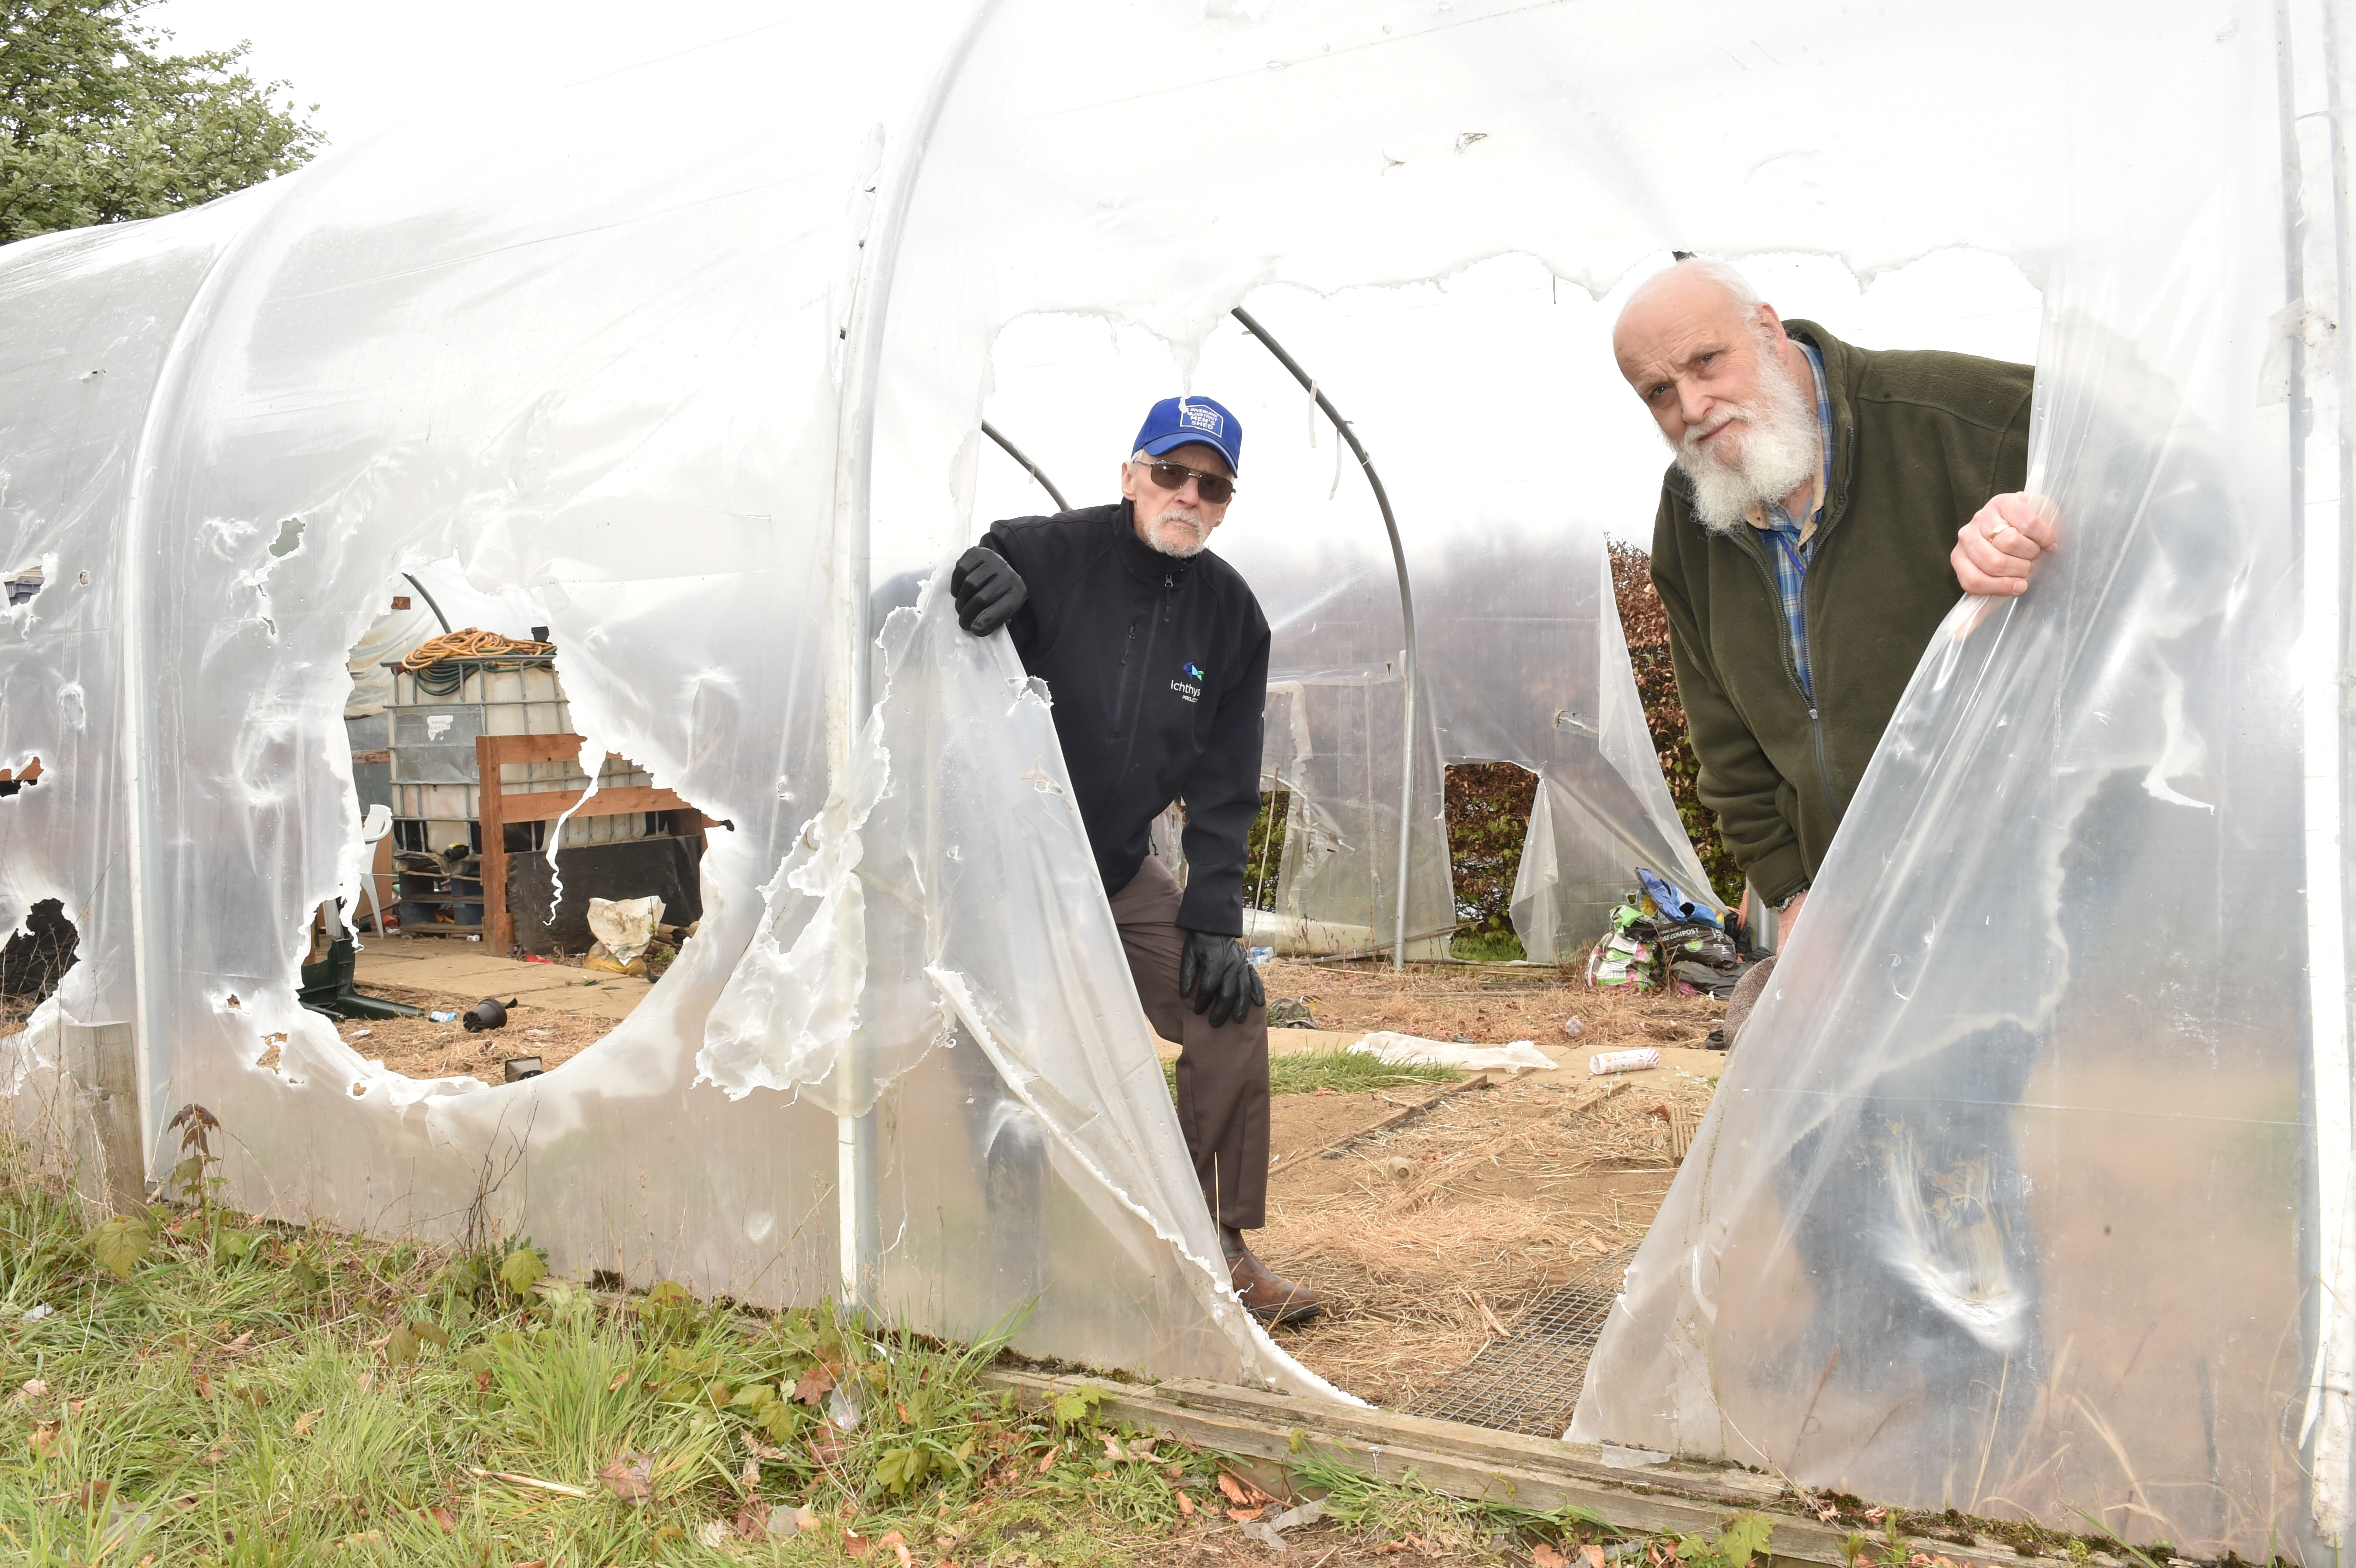 The Inverurie and District men's shed has been vandalised, yet again. - members Leith Robertson and Jim Smith inspect the damage.